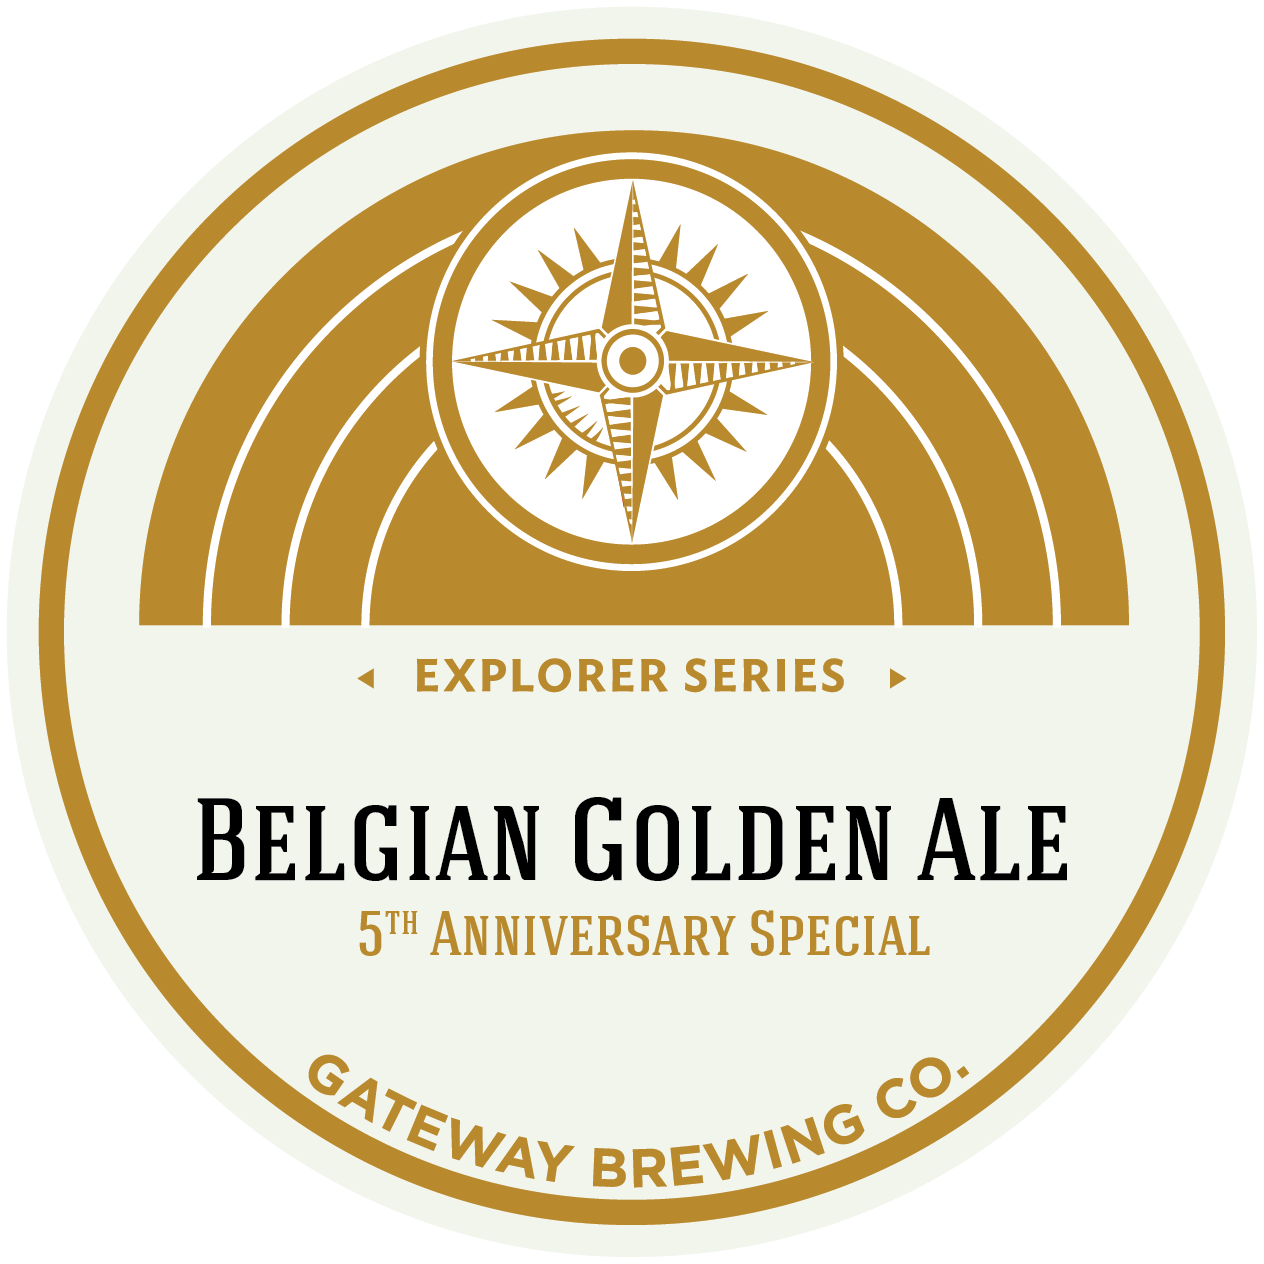 Belgian Golden Ale